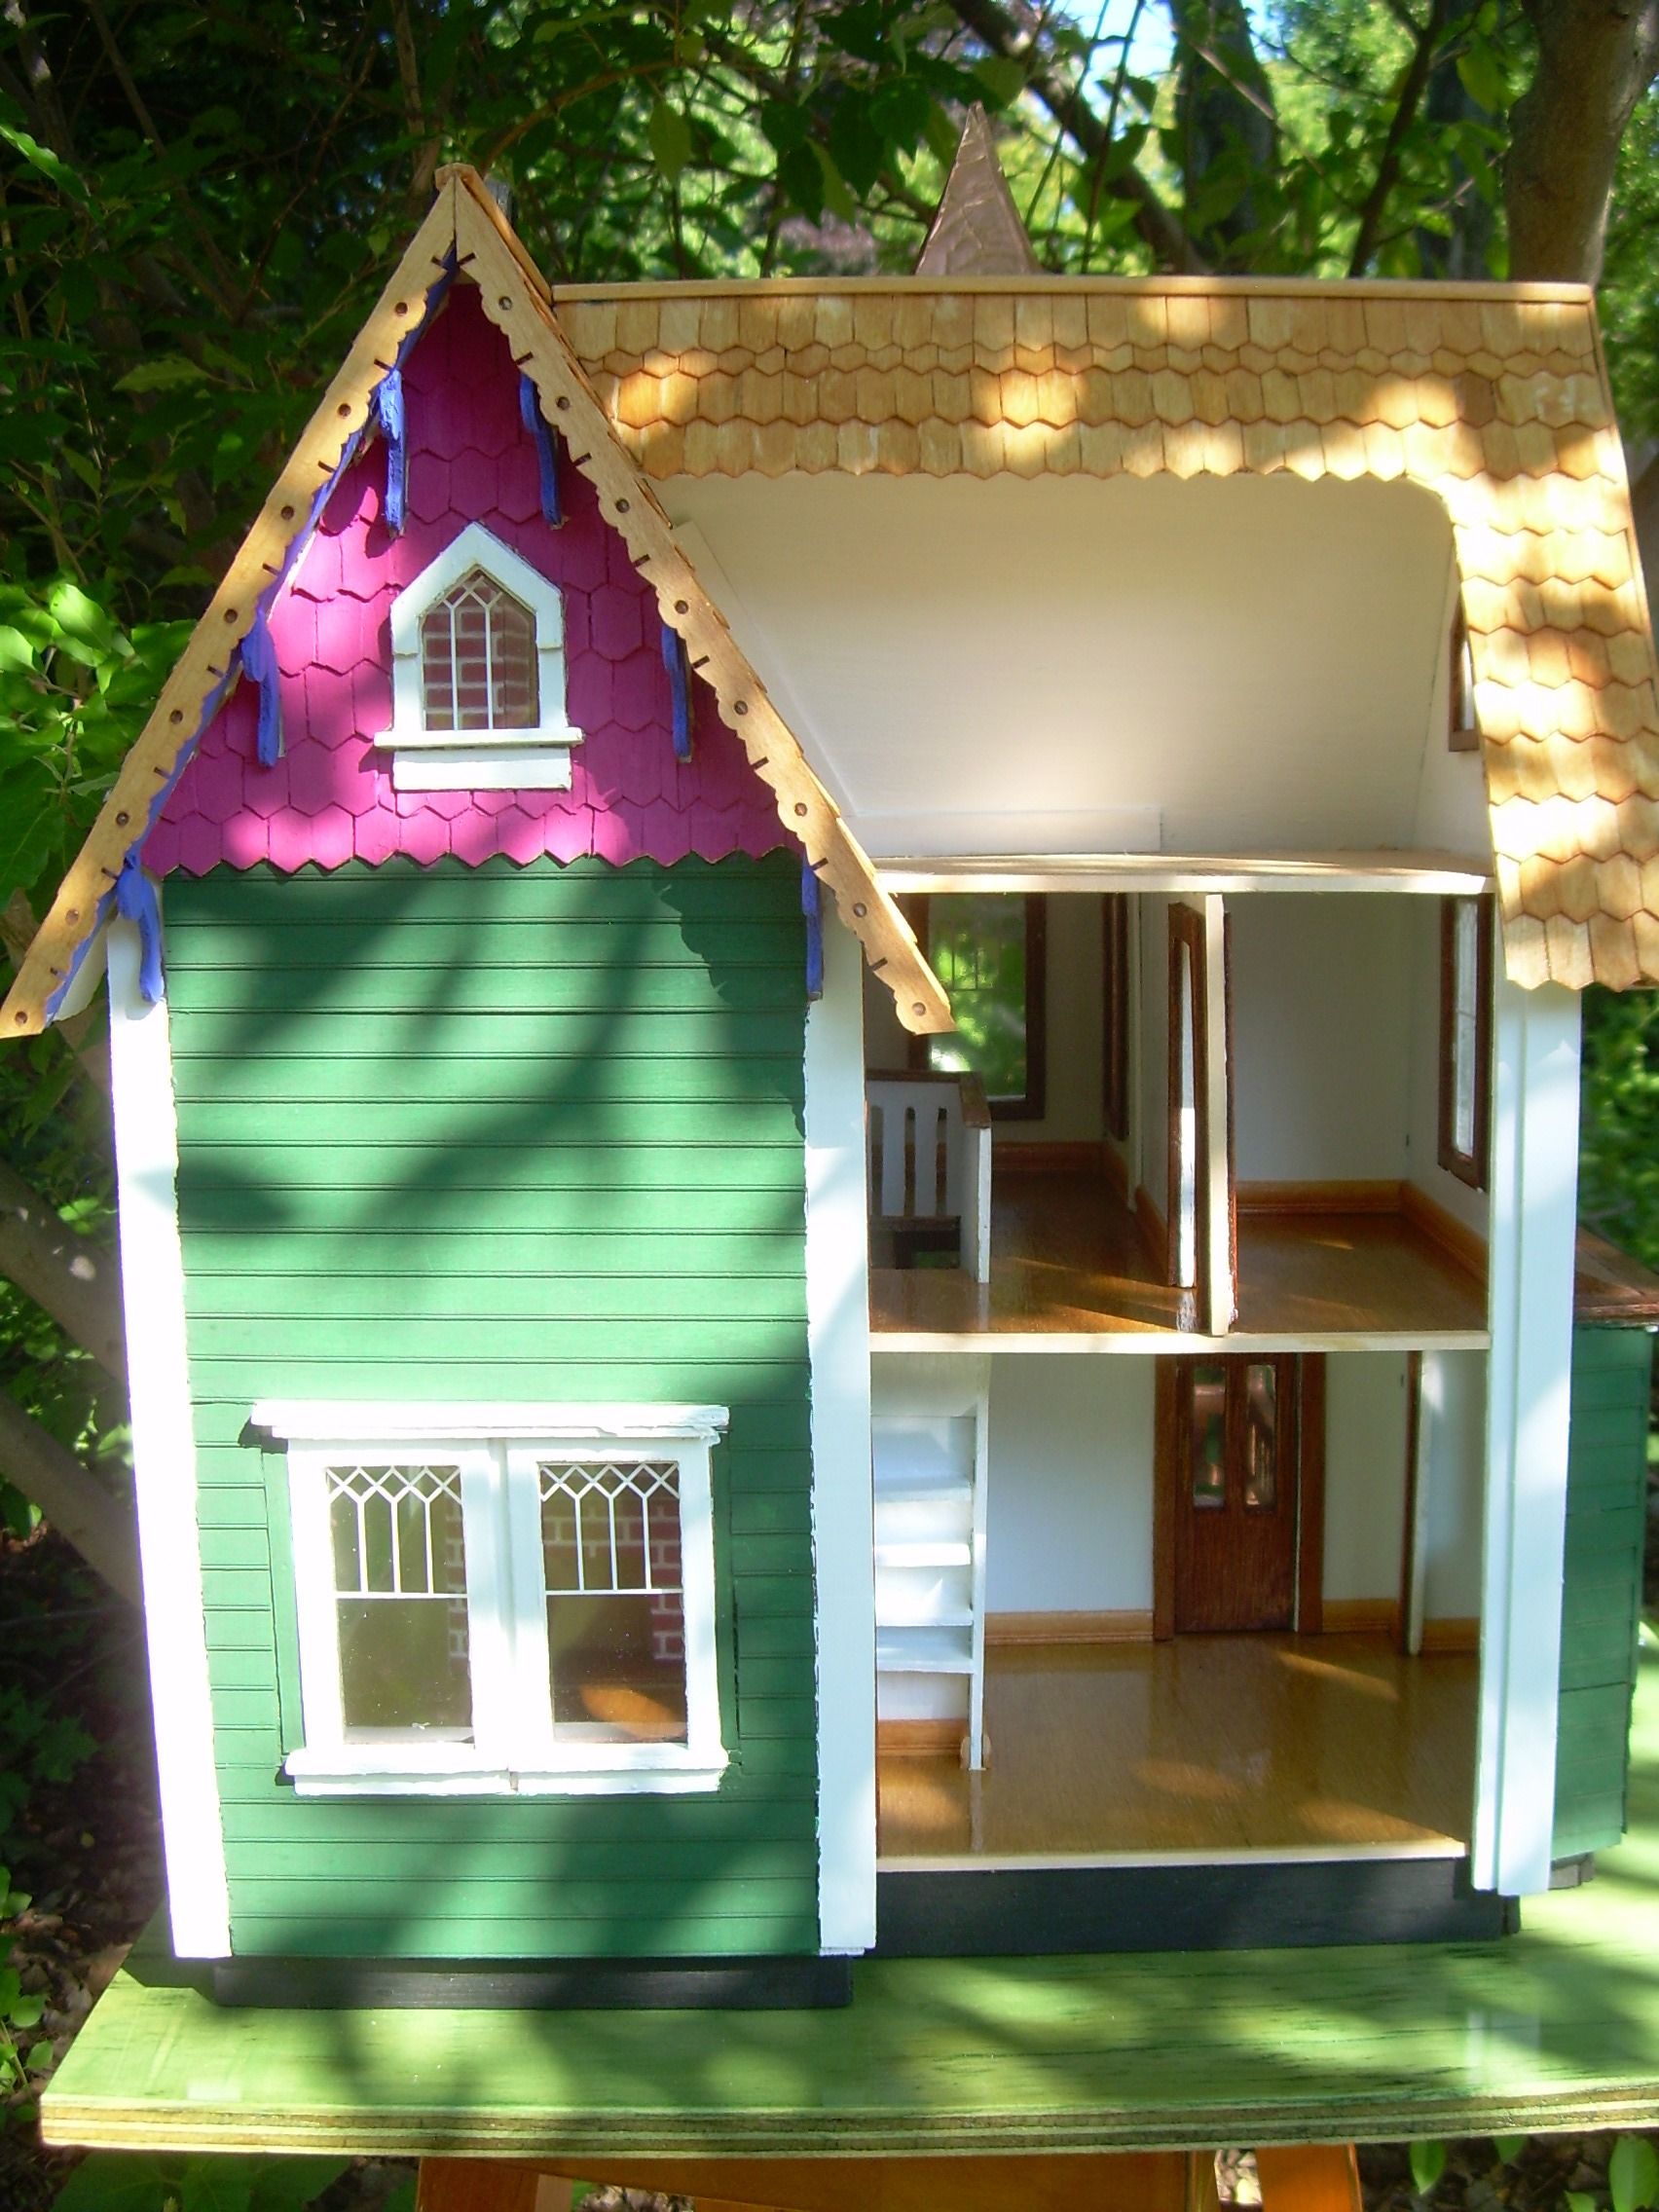 Back view of dollhouse, showing kitchen, upstairs with bath and attic